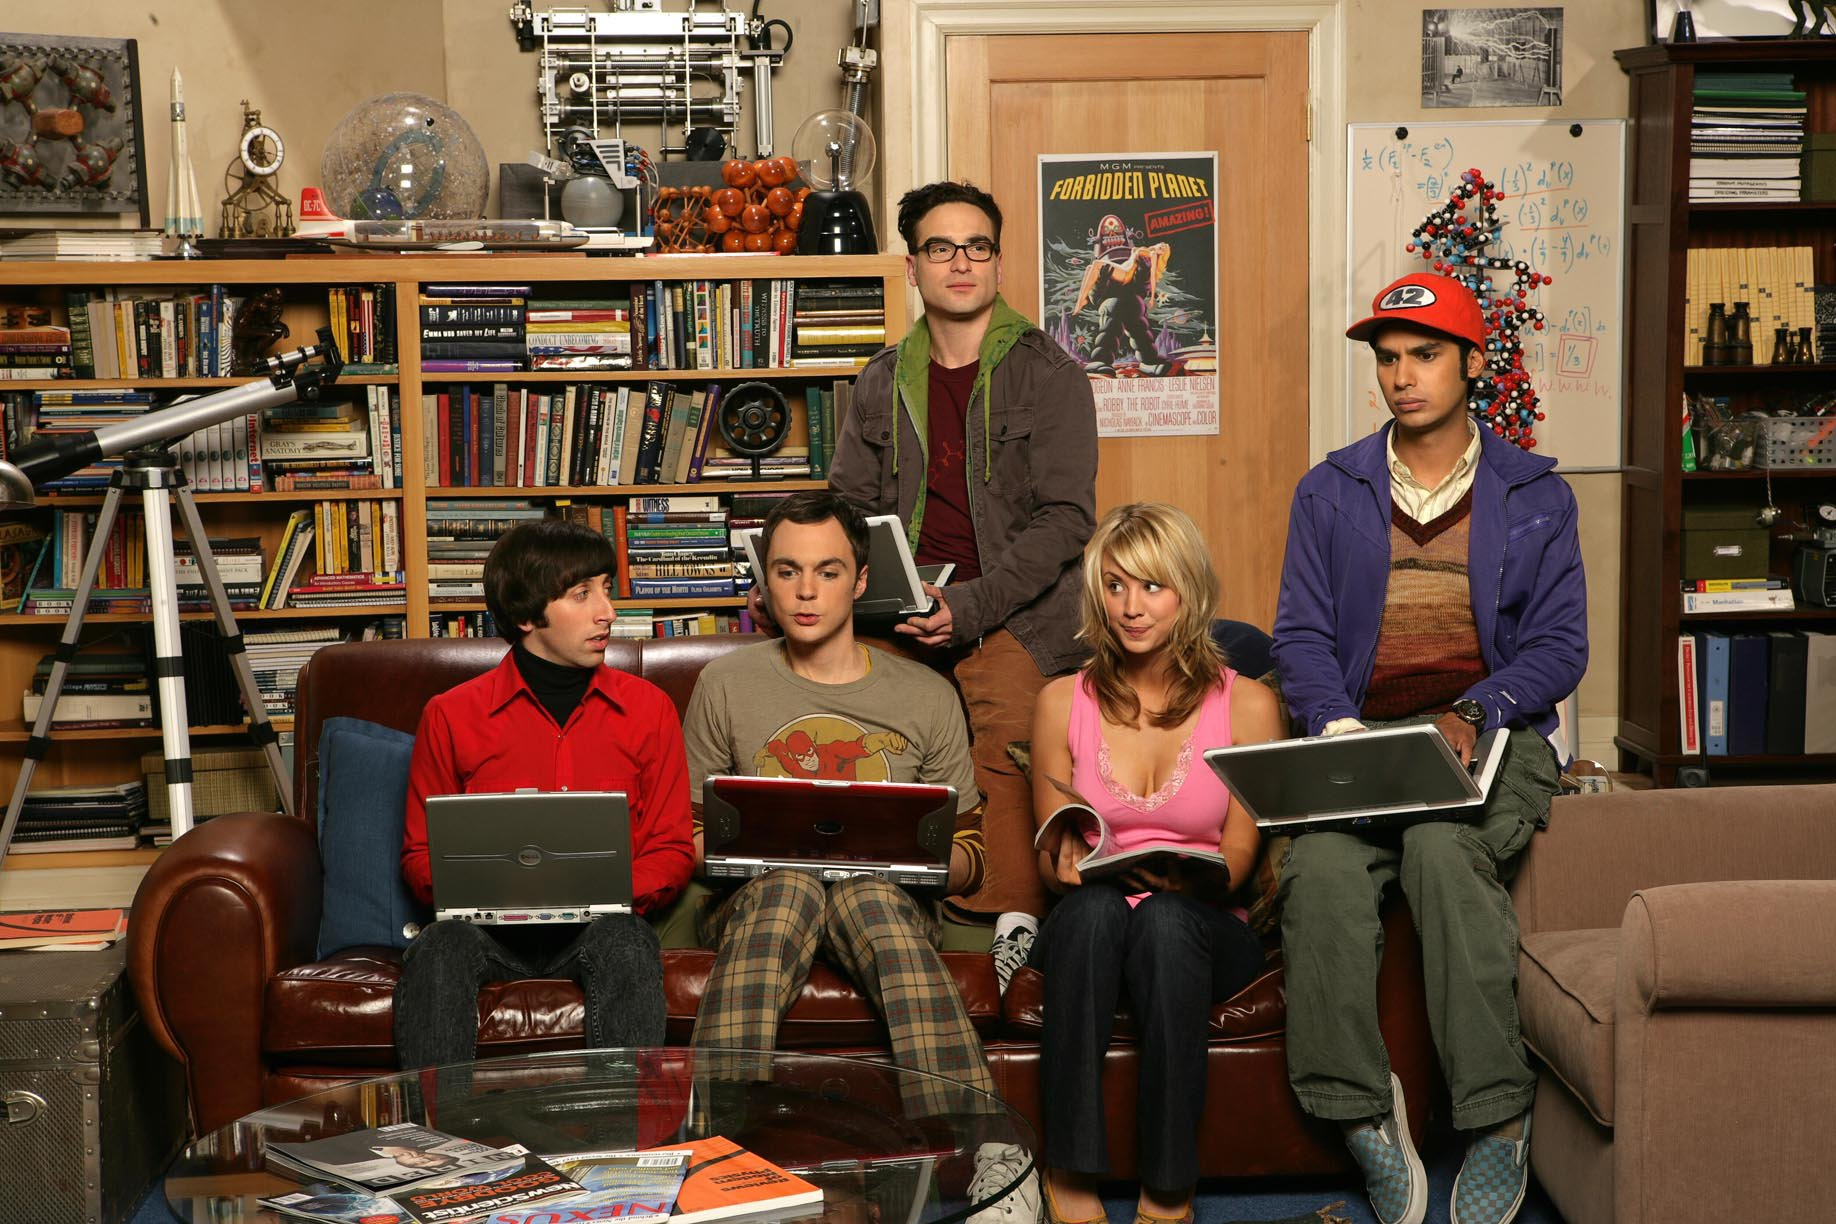 The Big Bang Theory cast in the apartment